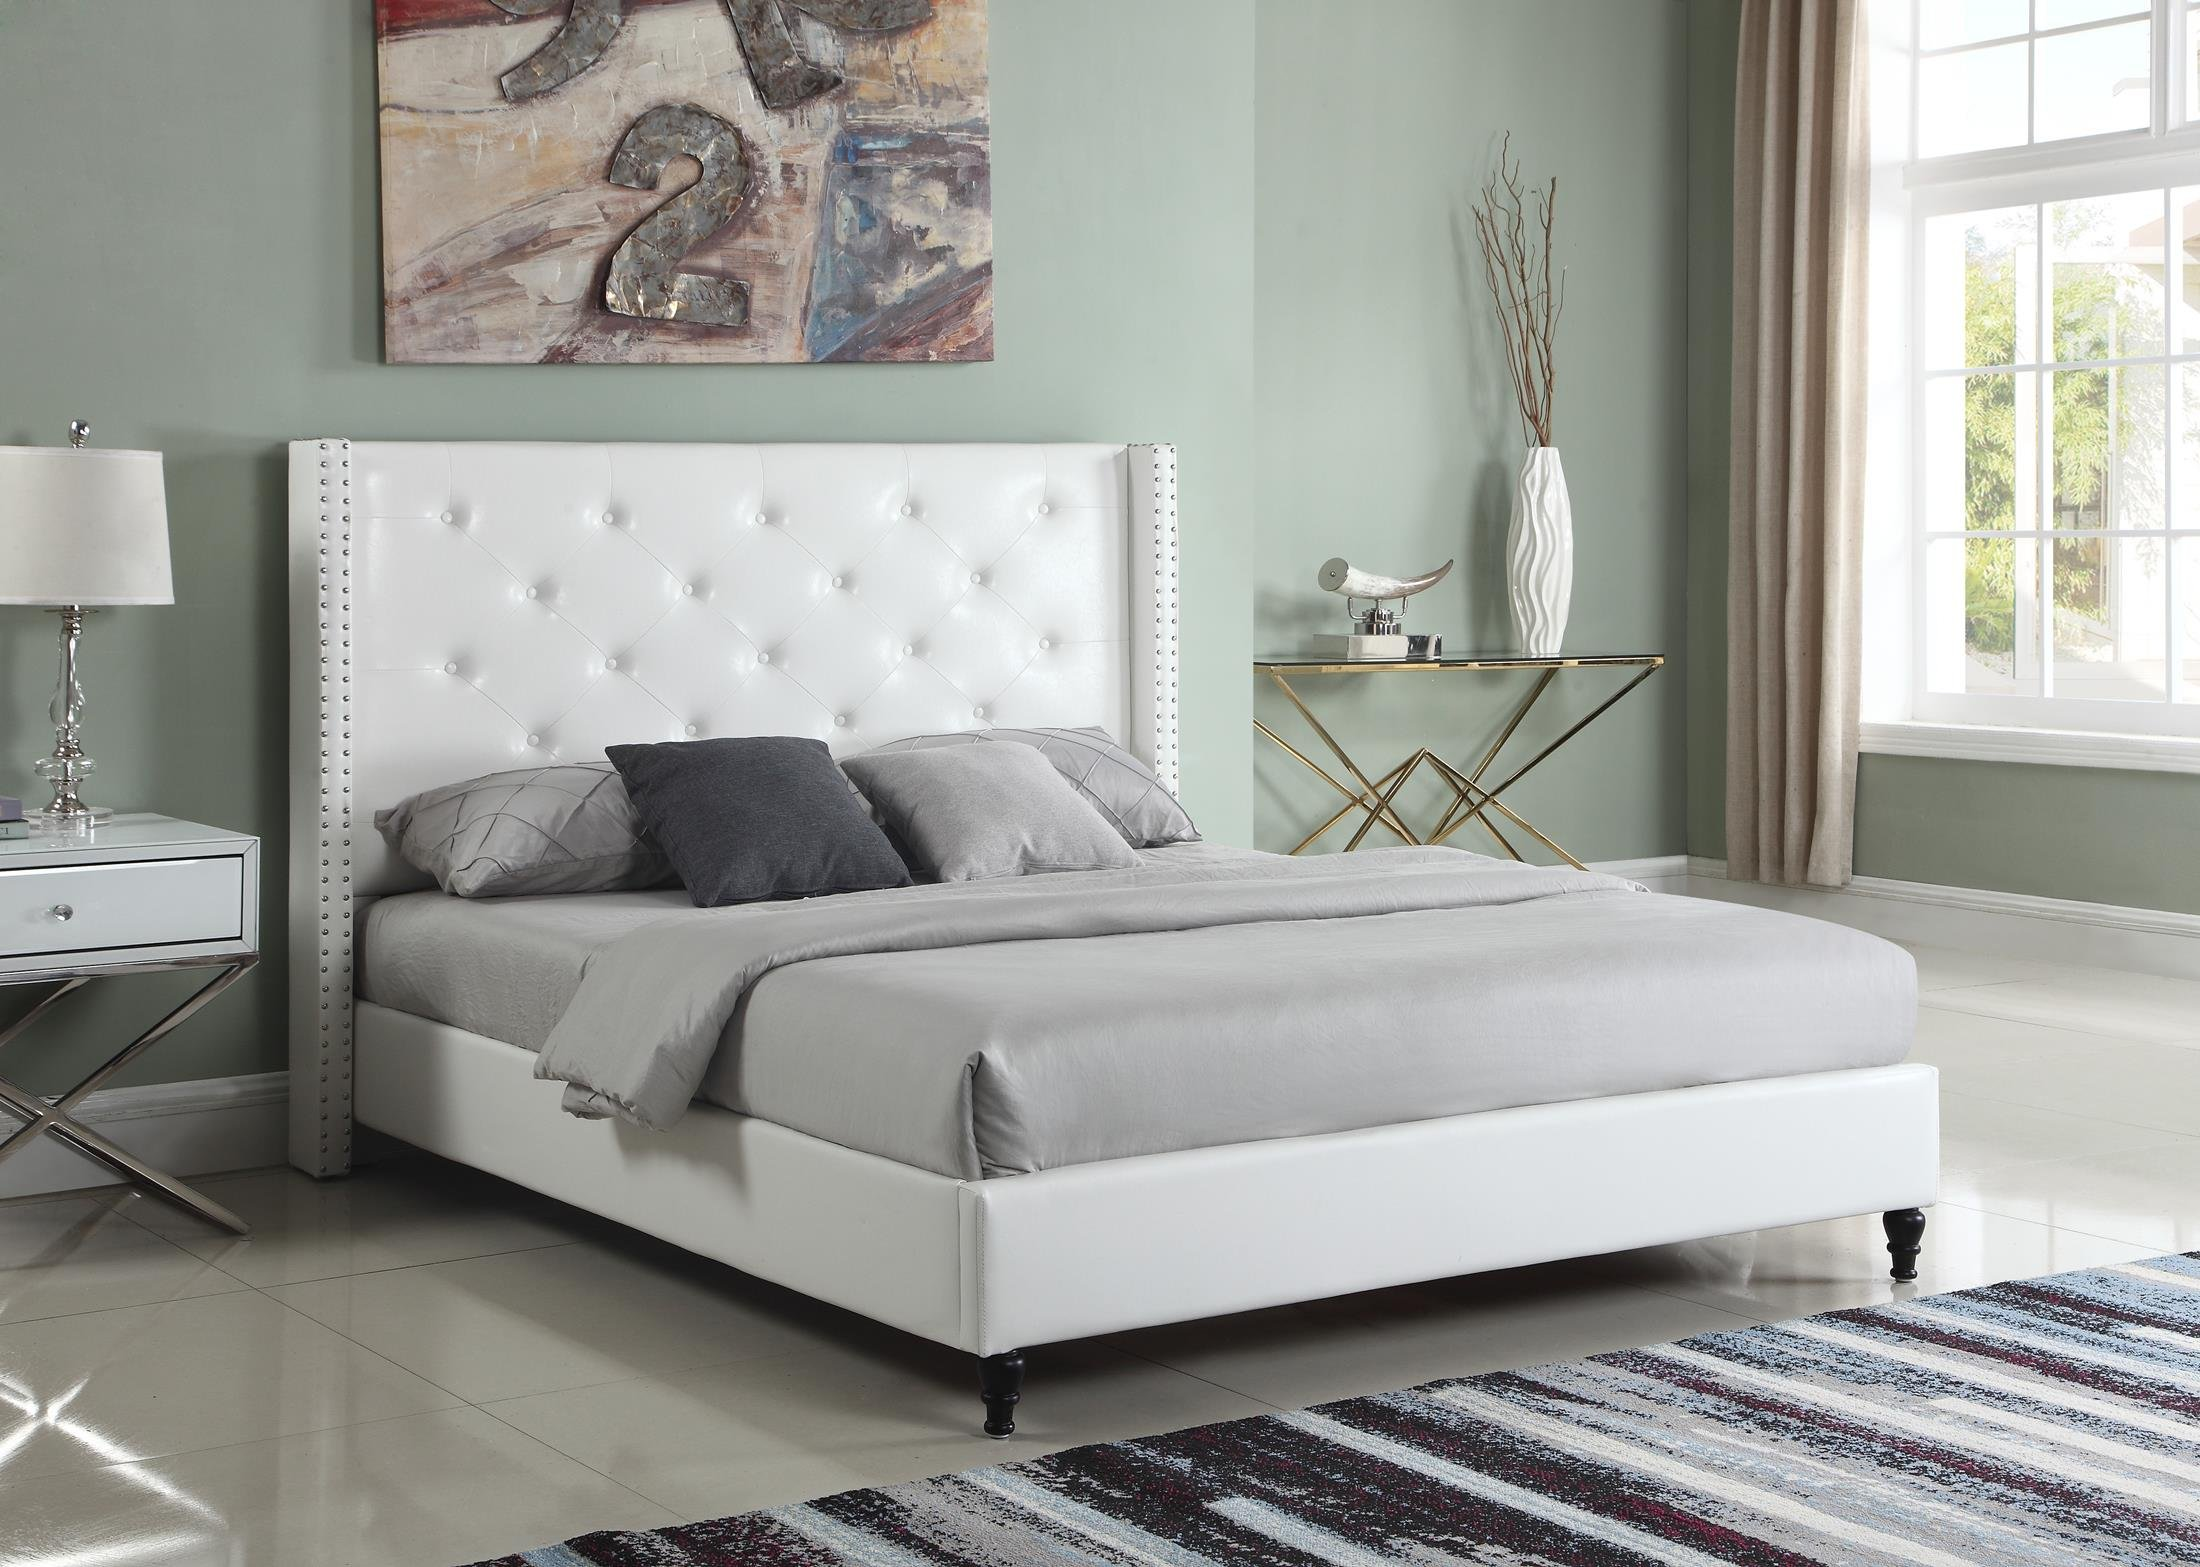 Home Life Premiere Classics Leather White Tufted with Nails Leather 51'' Tall Headboard Platform Bed with Slats Full - Complete Bed 5 Year Warranty Included 007